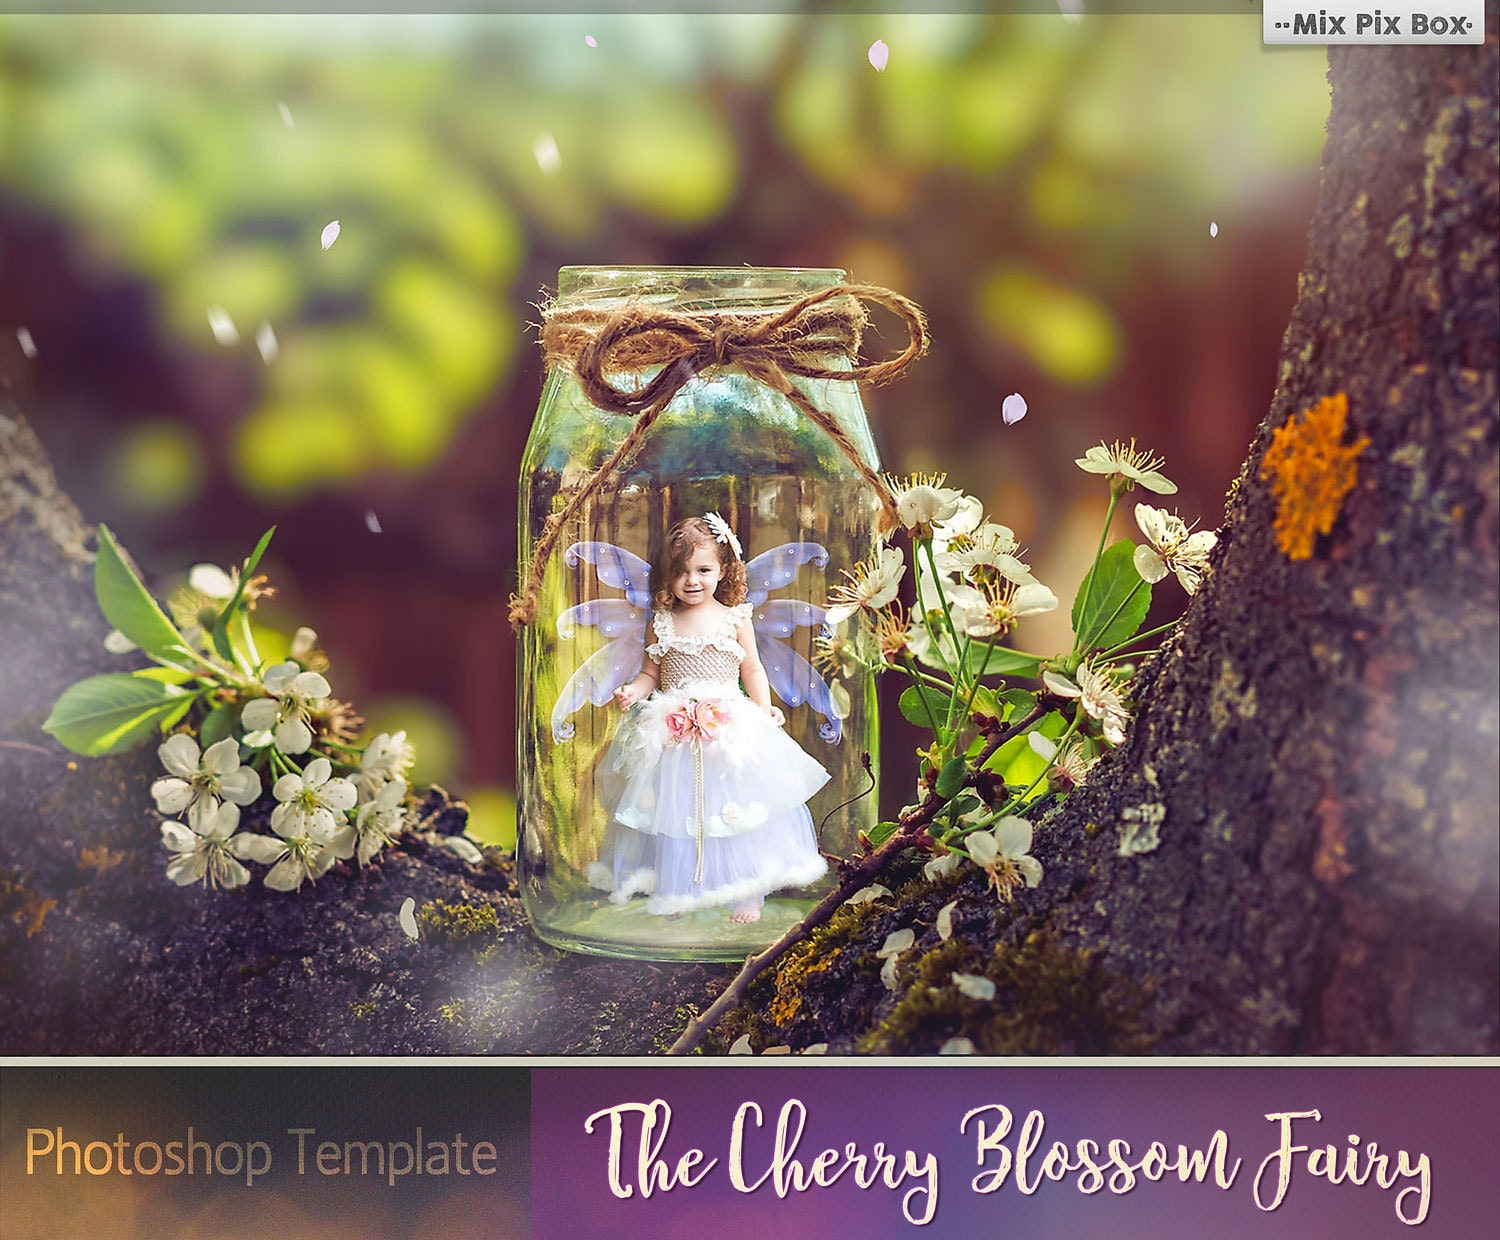 Digital backdrop fairy photoshop template scene photoshop digital backdrop fairy photoshop template scene photoshop digital backgrounds fairy psd template childrens backdrop psd fairy in jar baditri Images